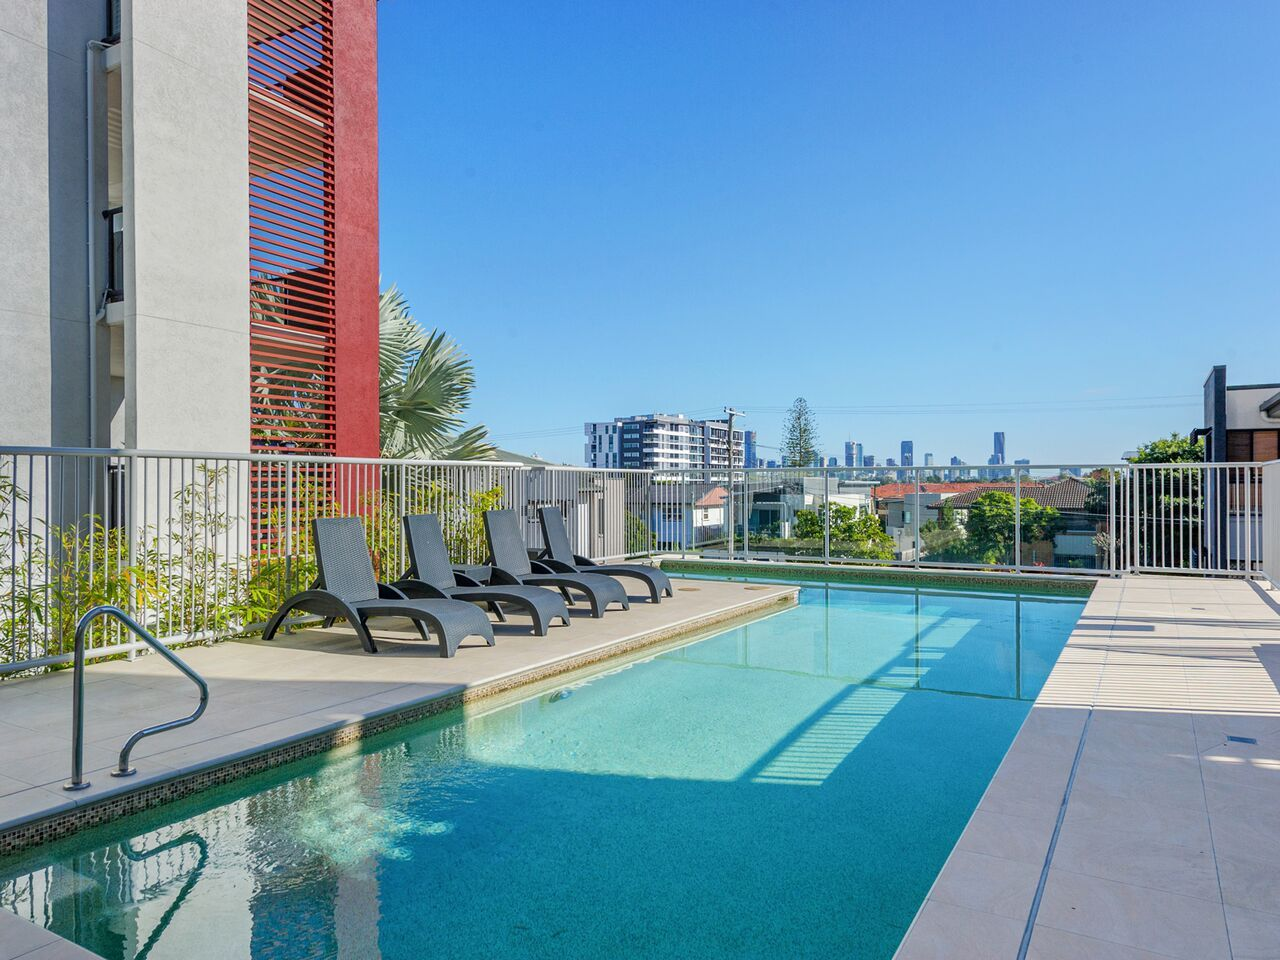 22/15 Kitchener Street, Coorparoo QLD 4151 - Apartment For Rent   Domain